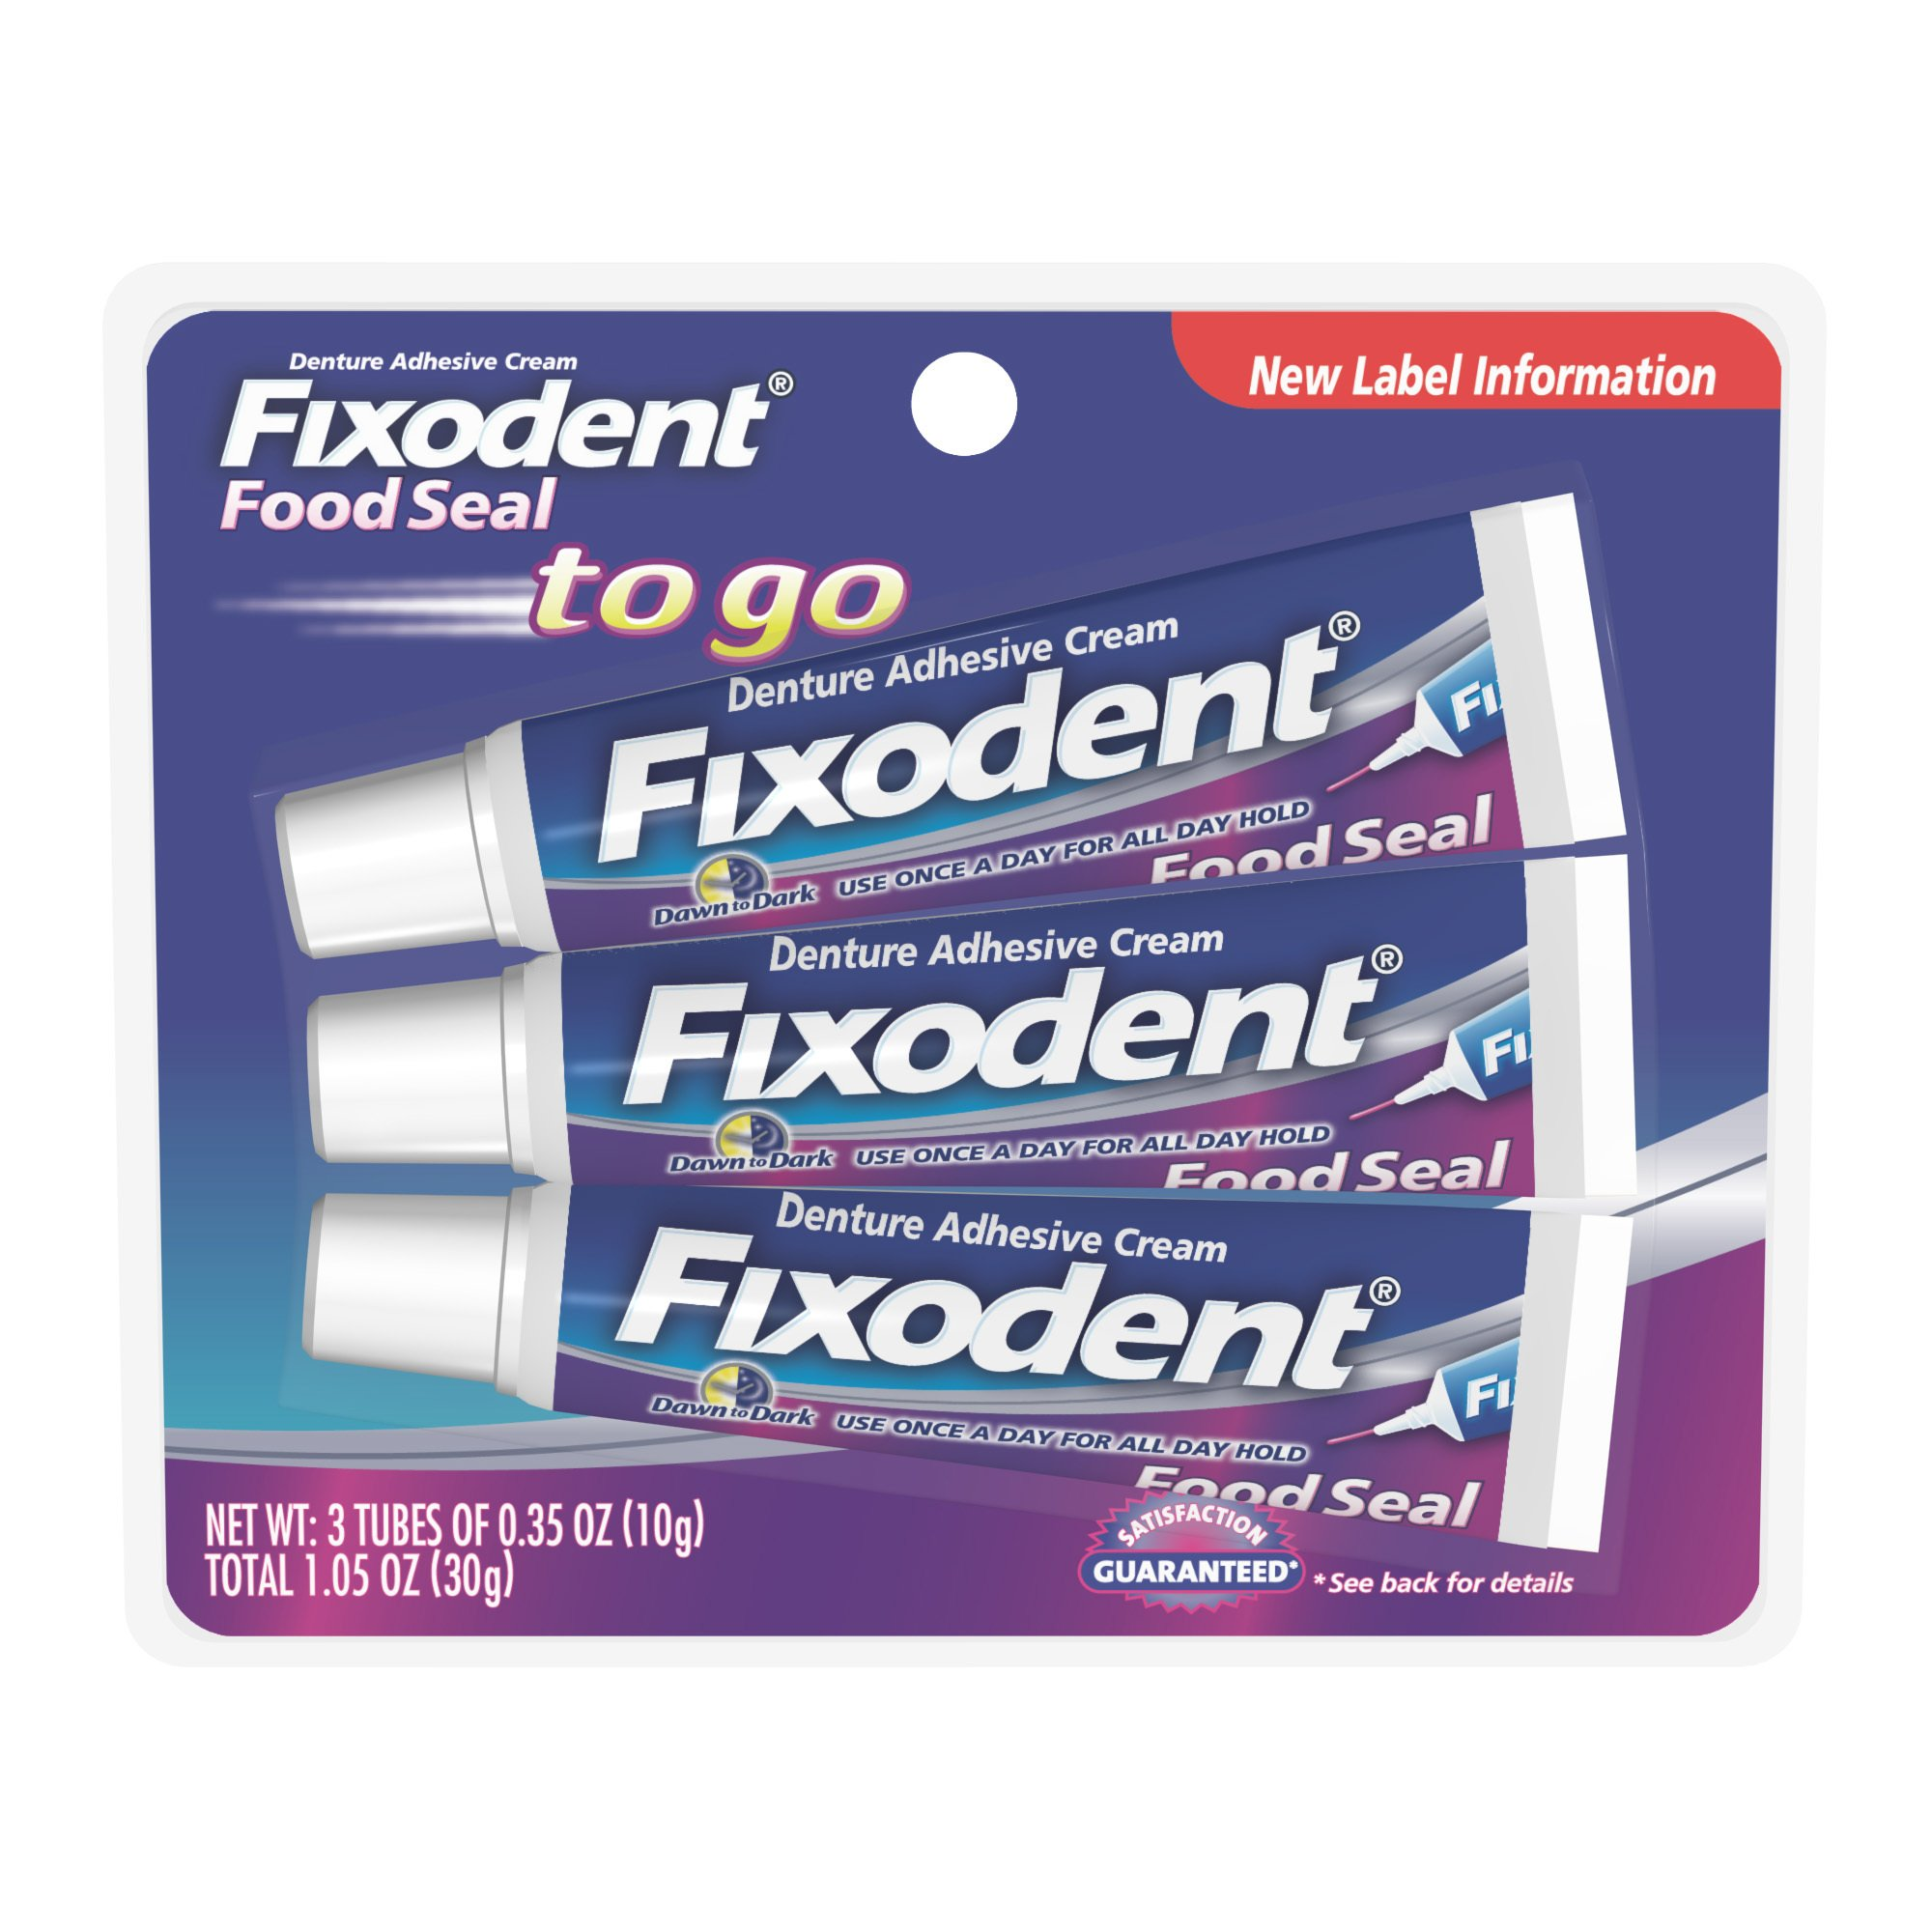 Fixodent Food Seal To Go